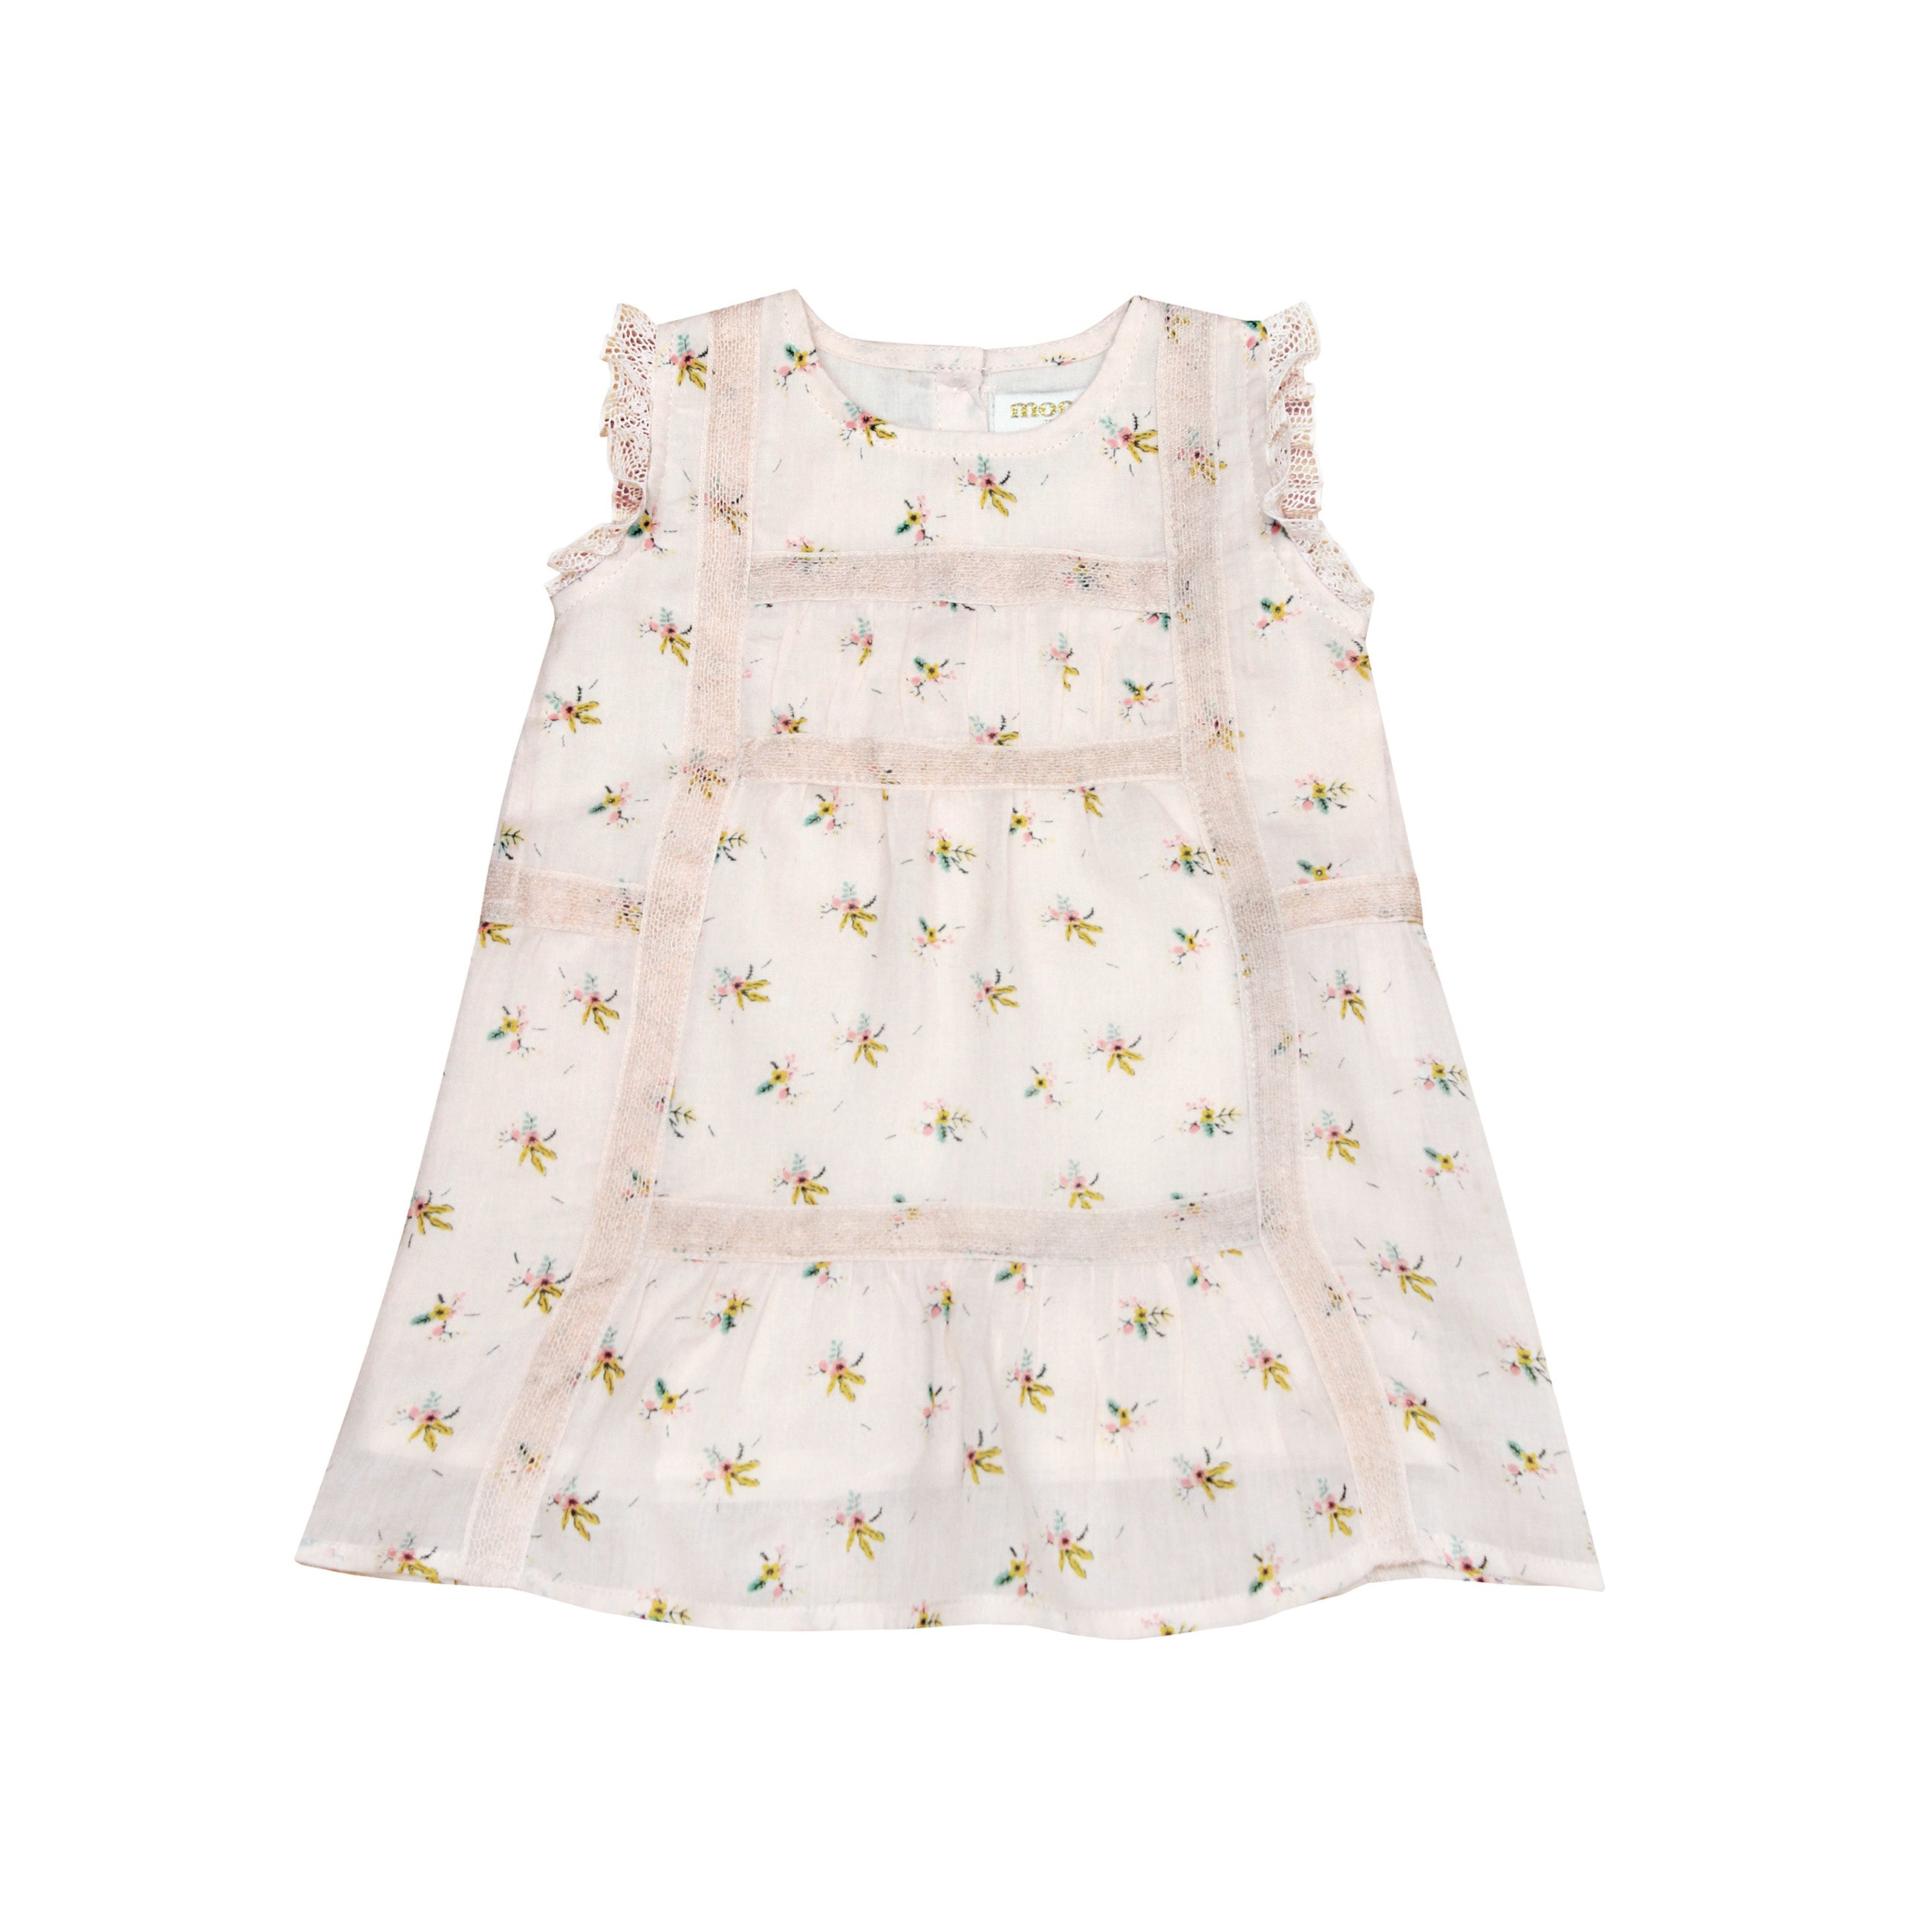 Moon Paris Adeline Baby Girl Dress Light Flowers | BIEN BIEN www.bienbienshop.com